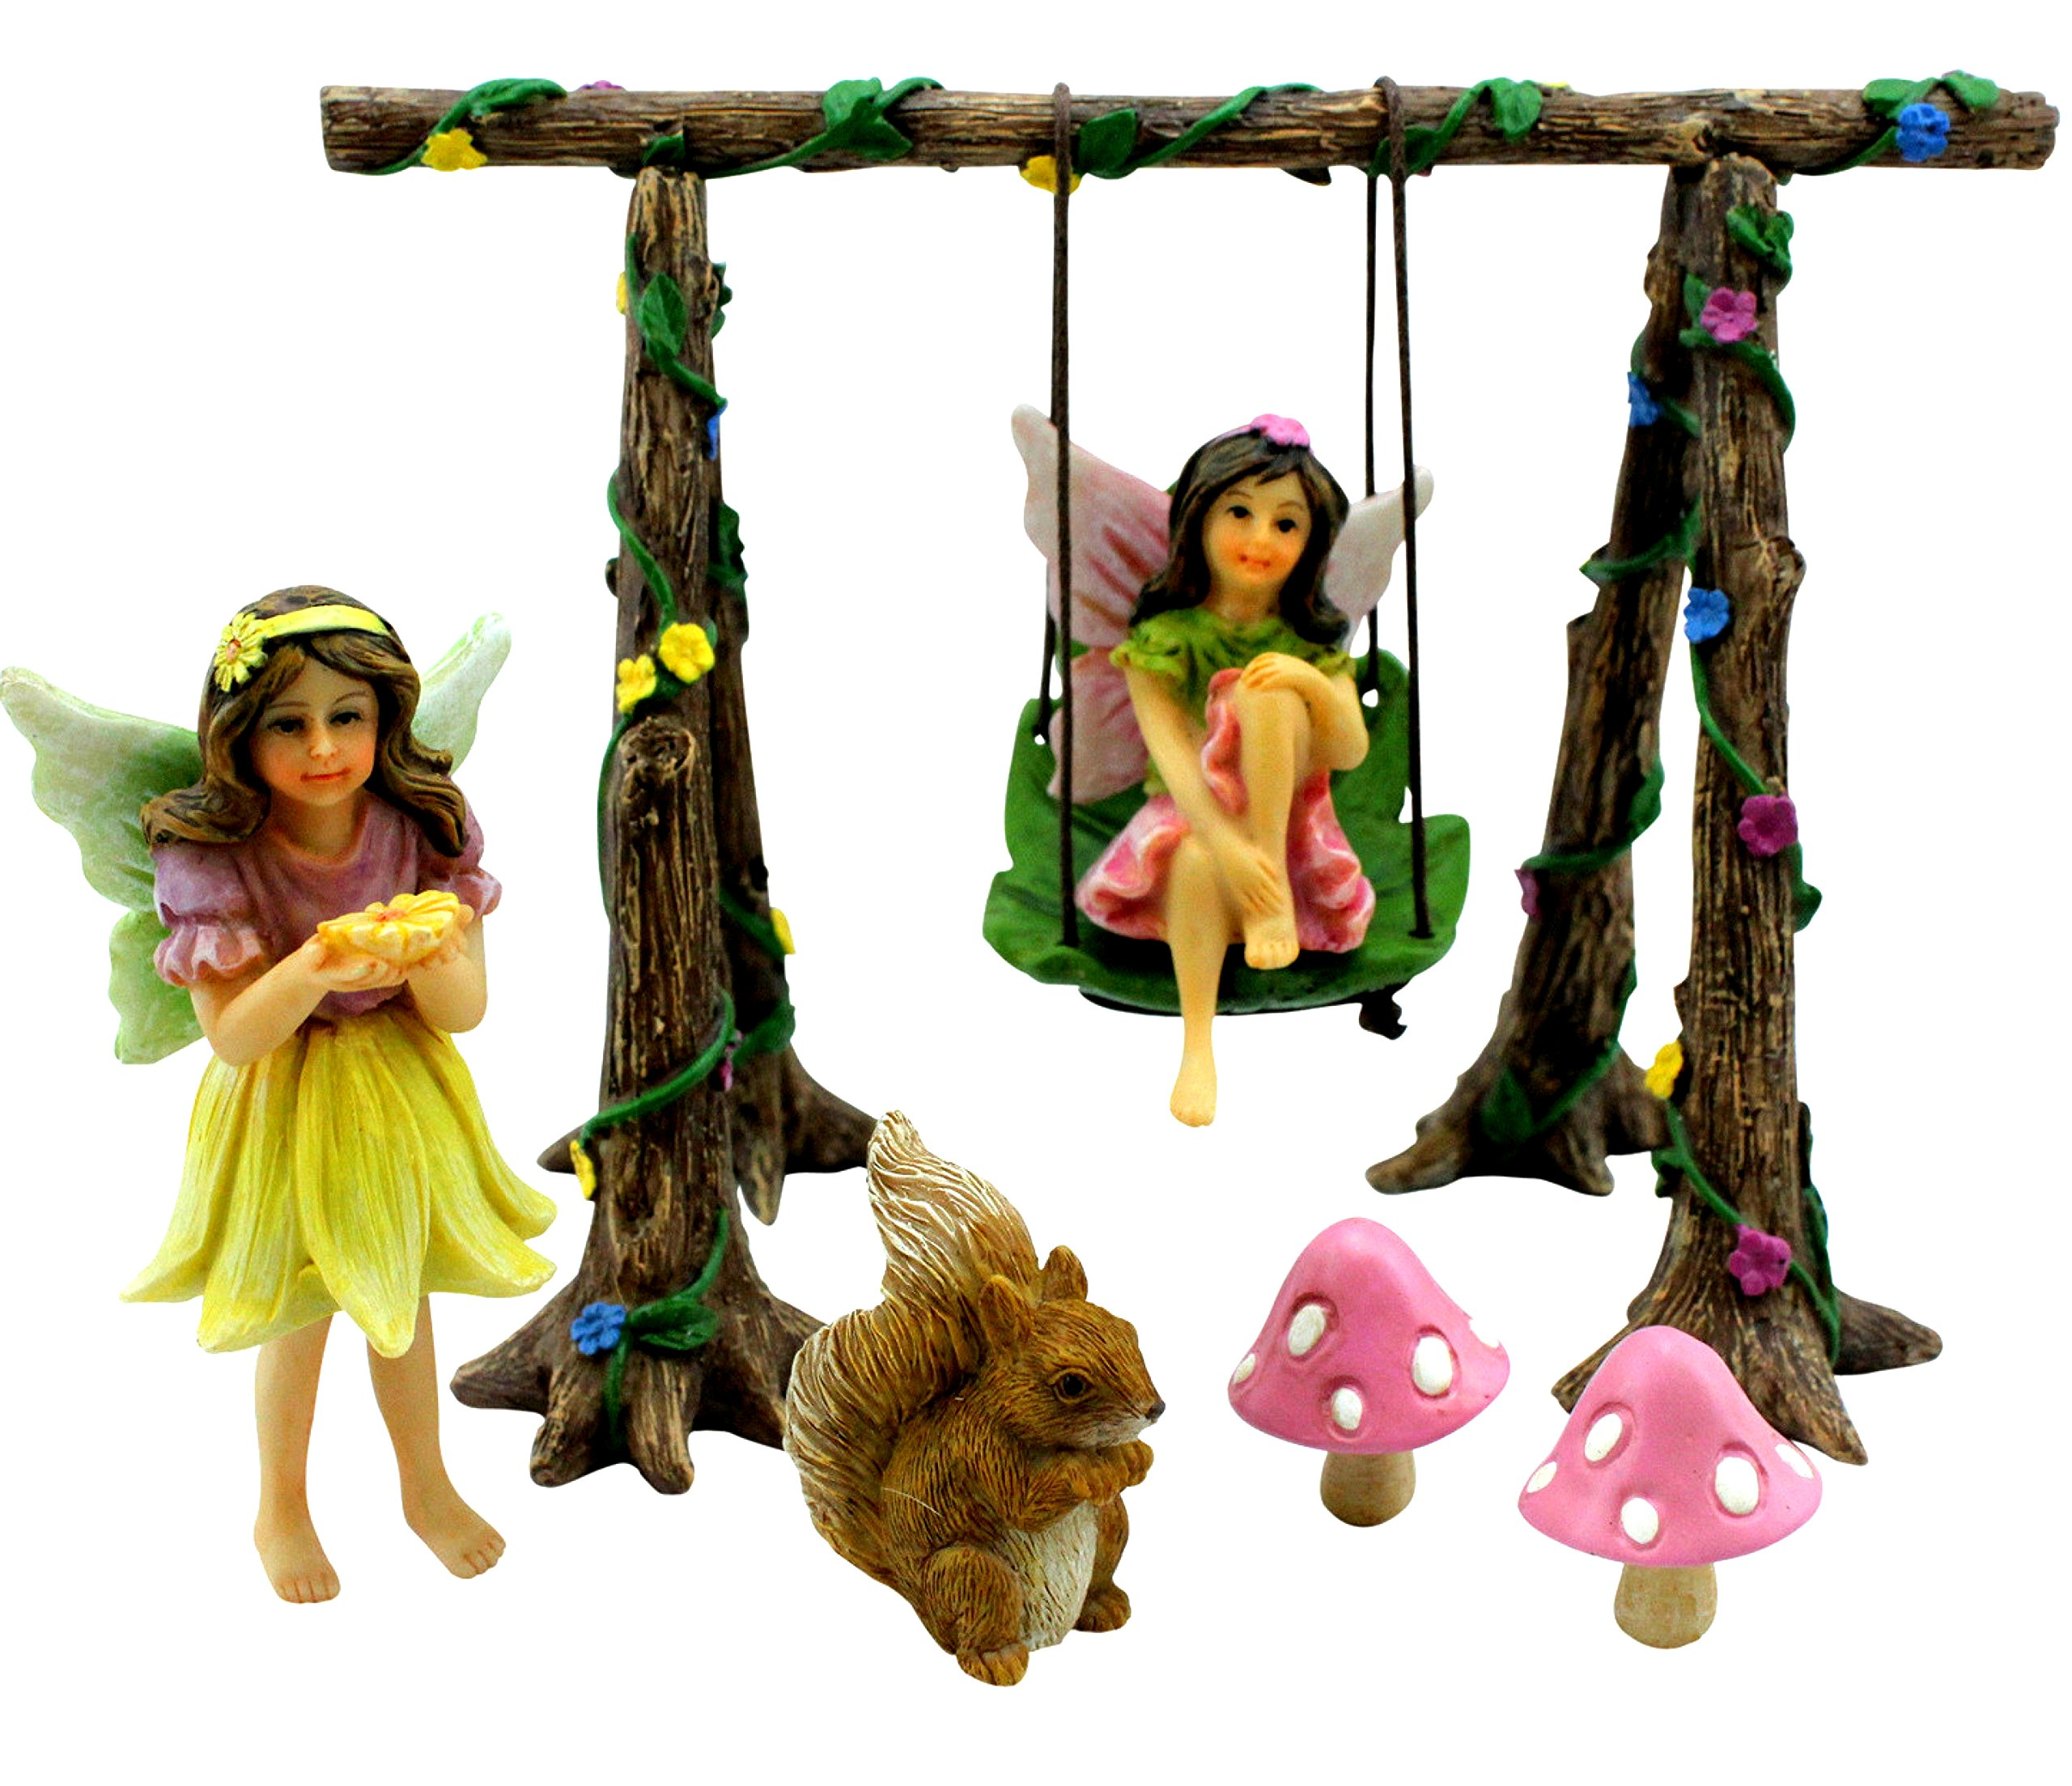 Pretmanns Fairy Garden Accessories Kit – Miniature Garden Fairies – Fairy Garden Figurines & Swing Set – Fairy Garden Supplies by Pretmanns